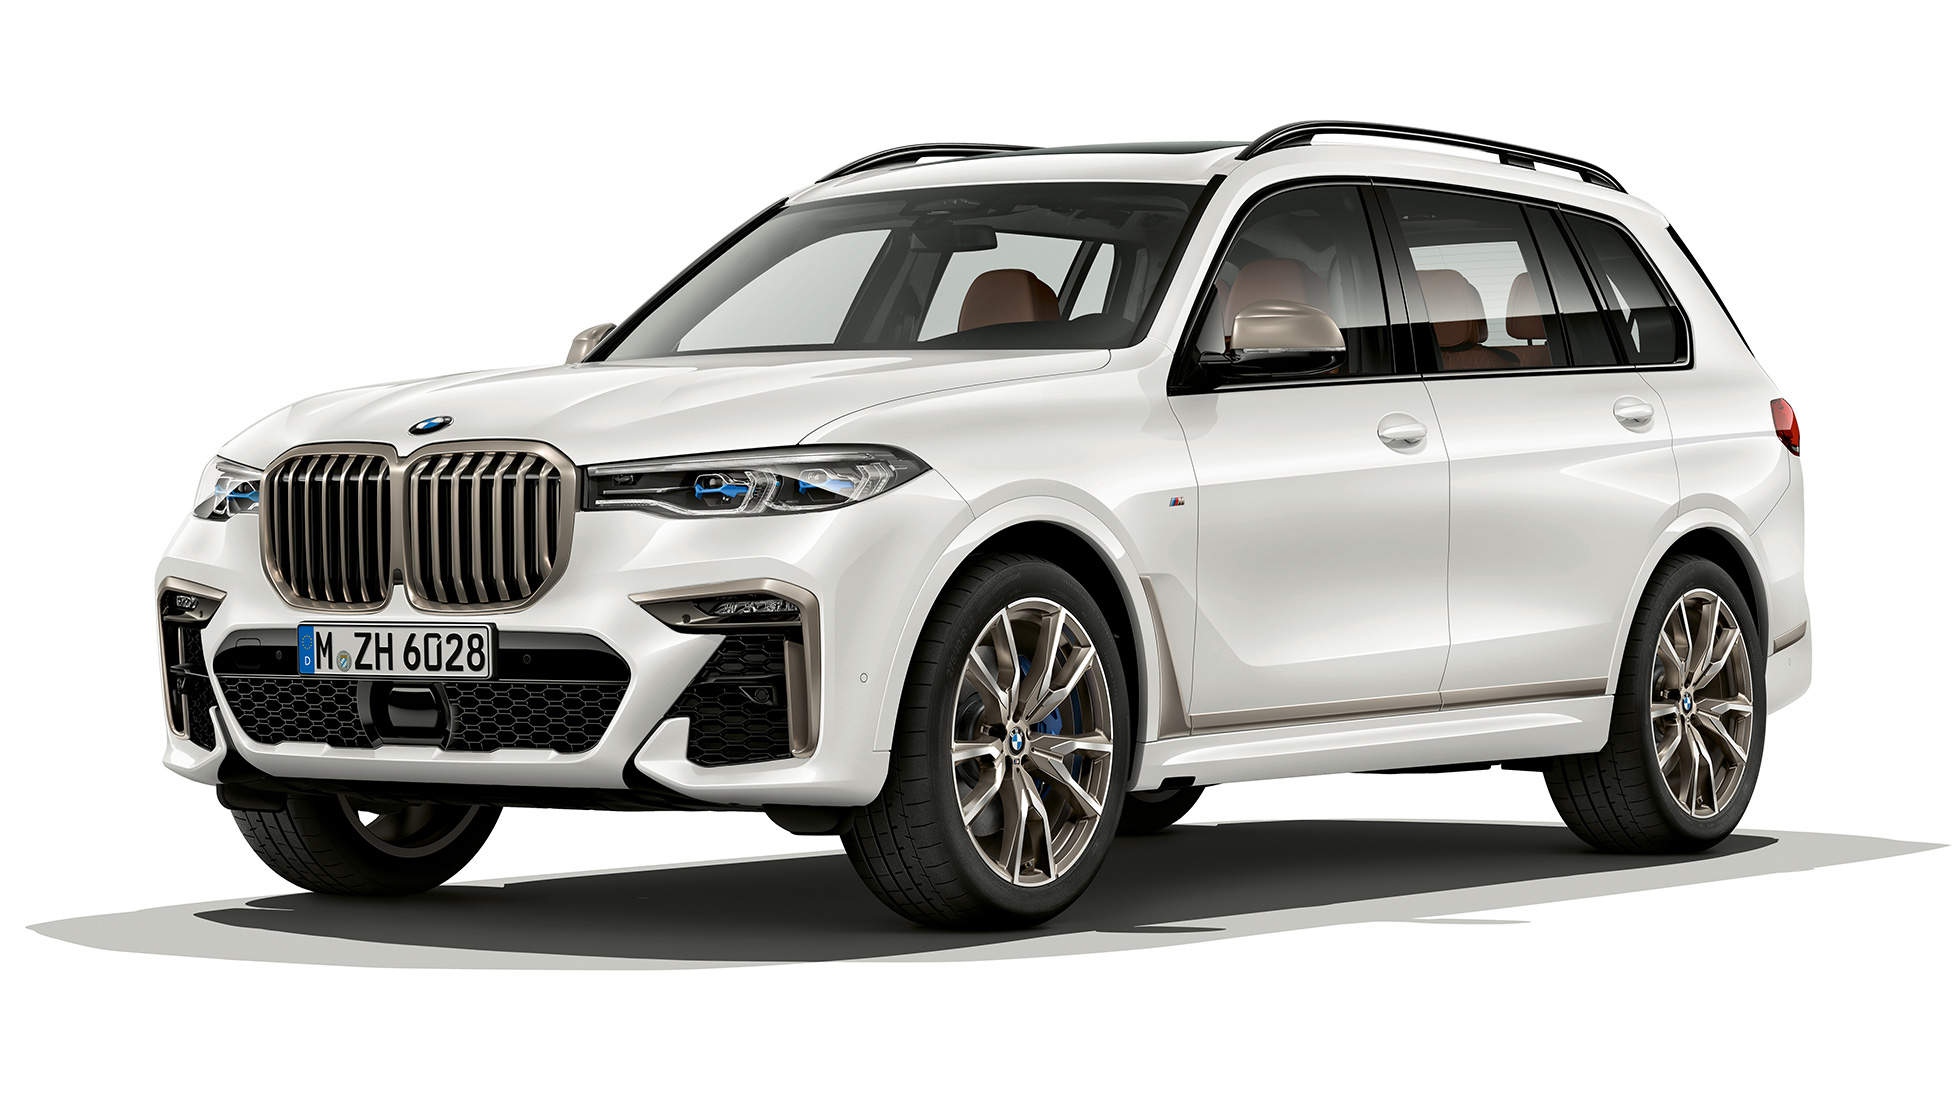 Studio shot of the BMW X7 three-quarter front view als BMW X7 M50d